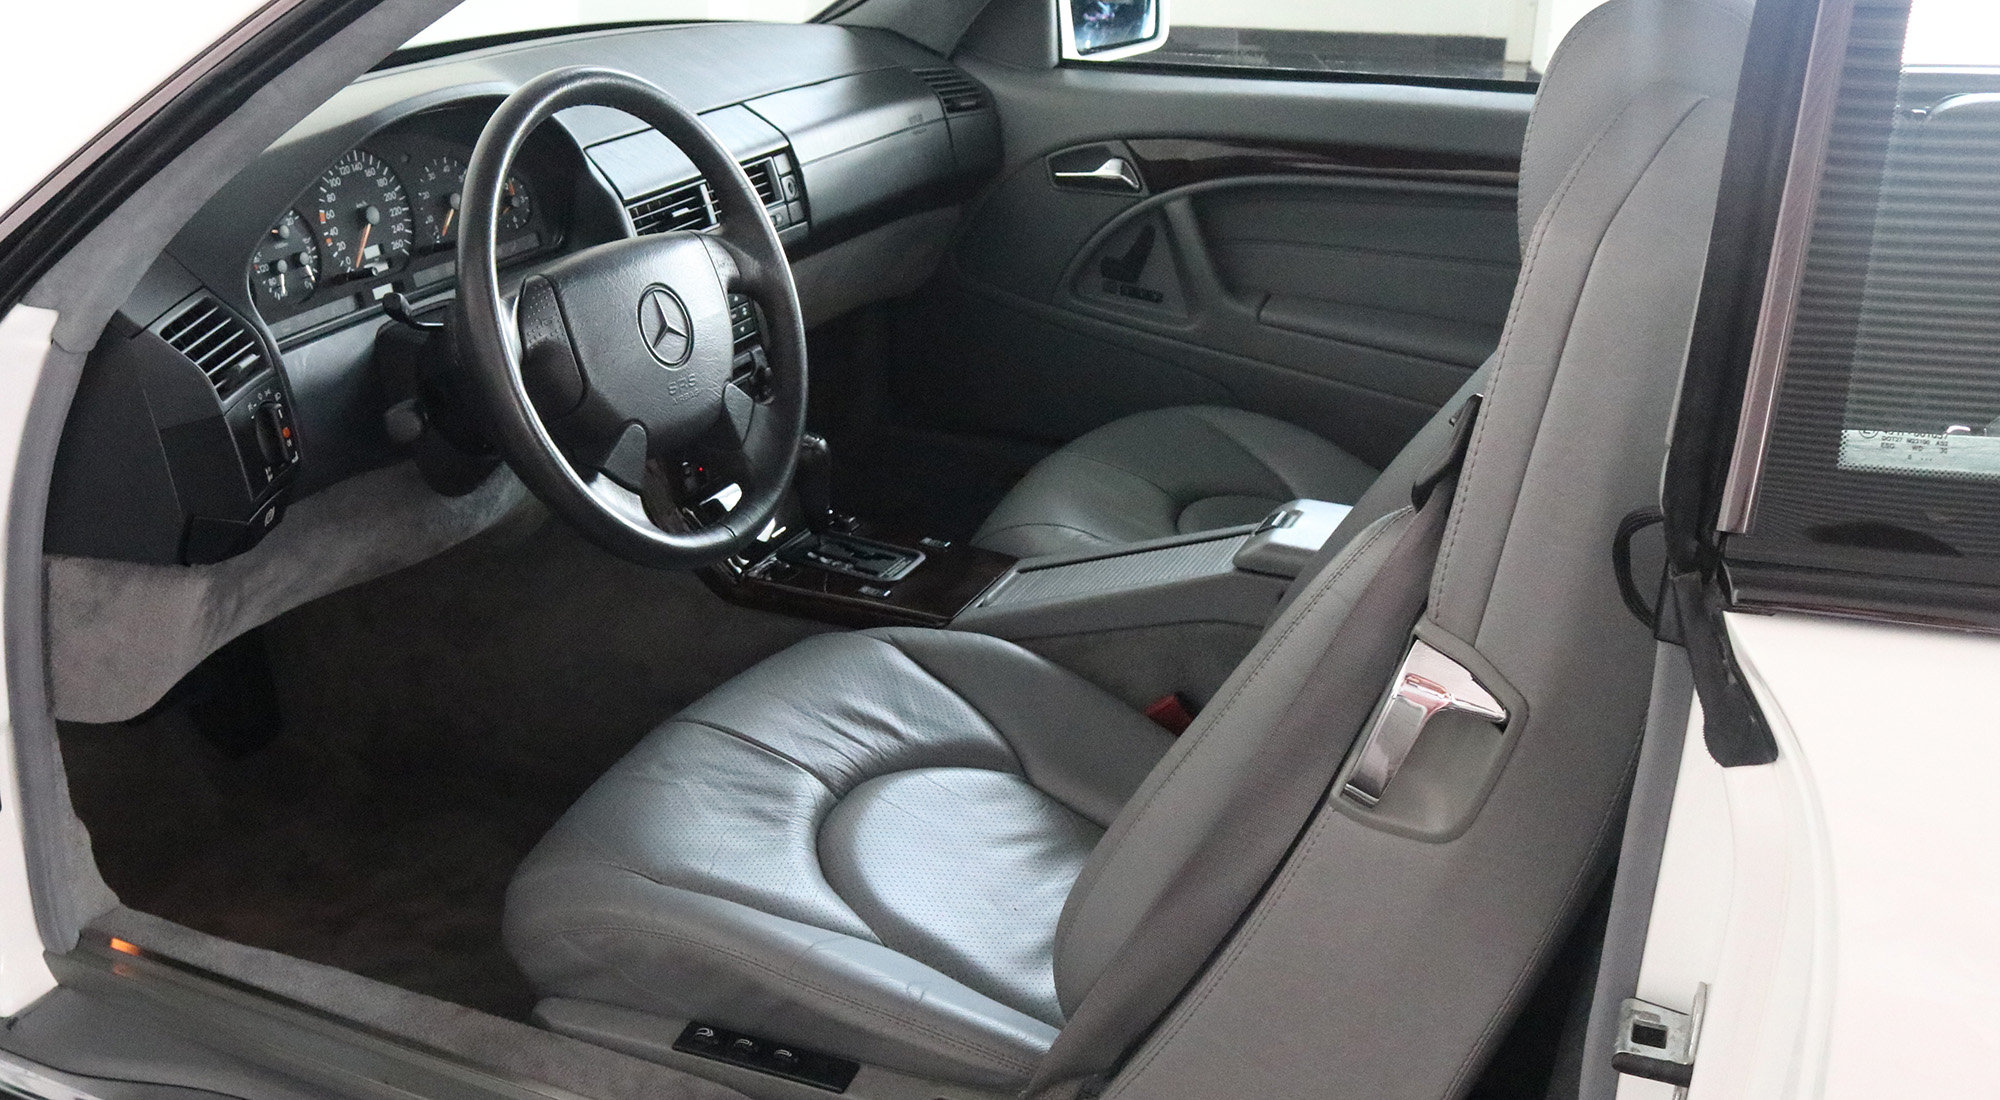 Mercedes-Benz SL500 (1996) For Sale (picture 5 of 6)